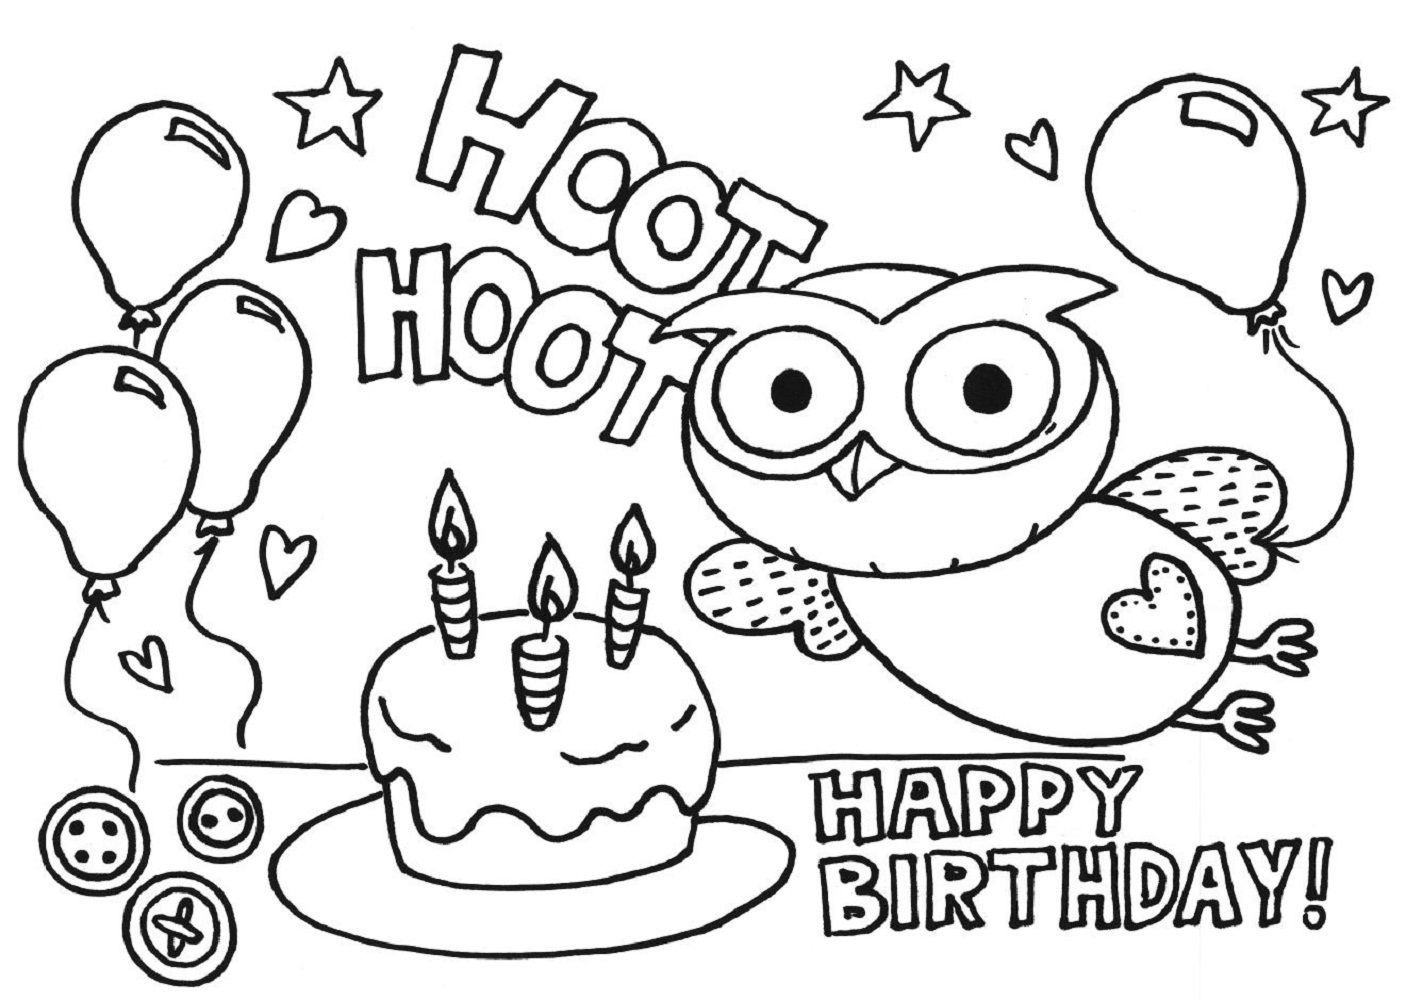 Happy Birthday Color Pages | Kiddo Shelter | Coloring Pages for Kids ...